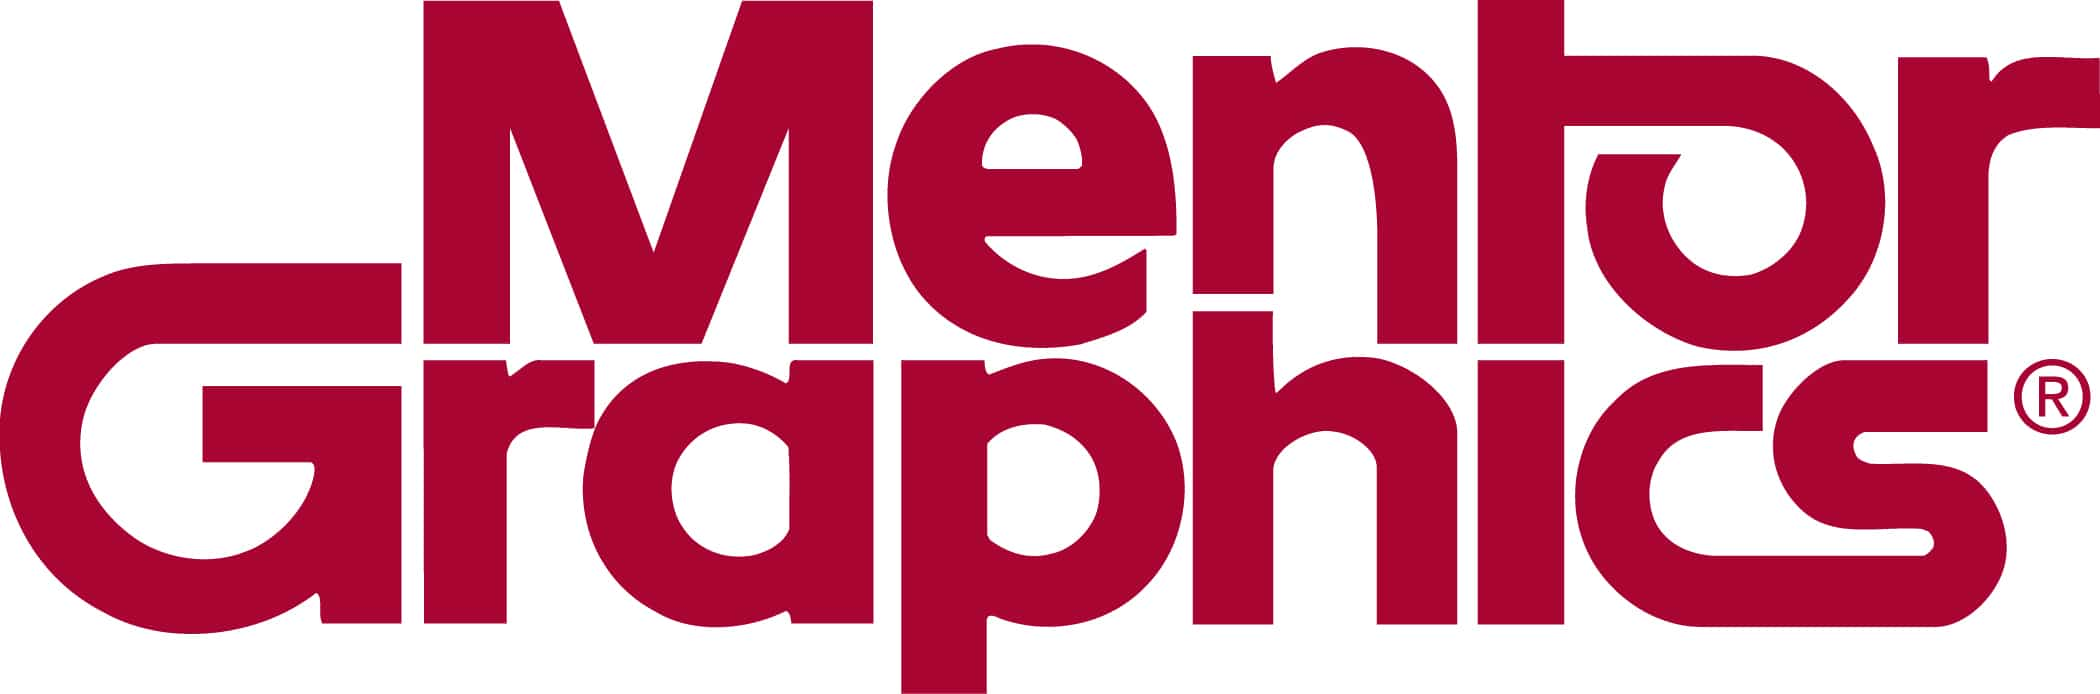 mentor_graphics_red_jpg_hr